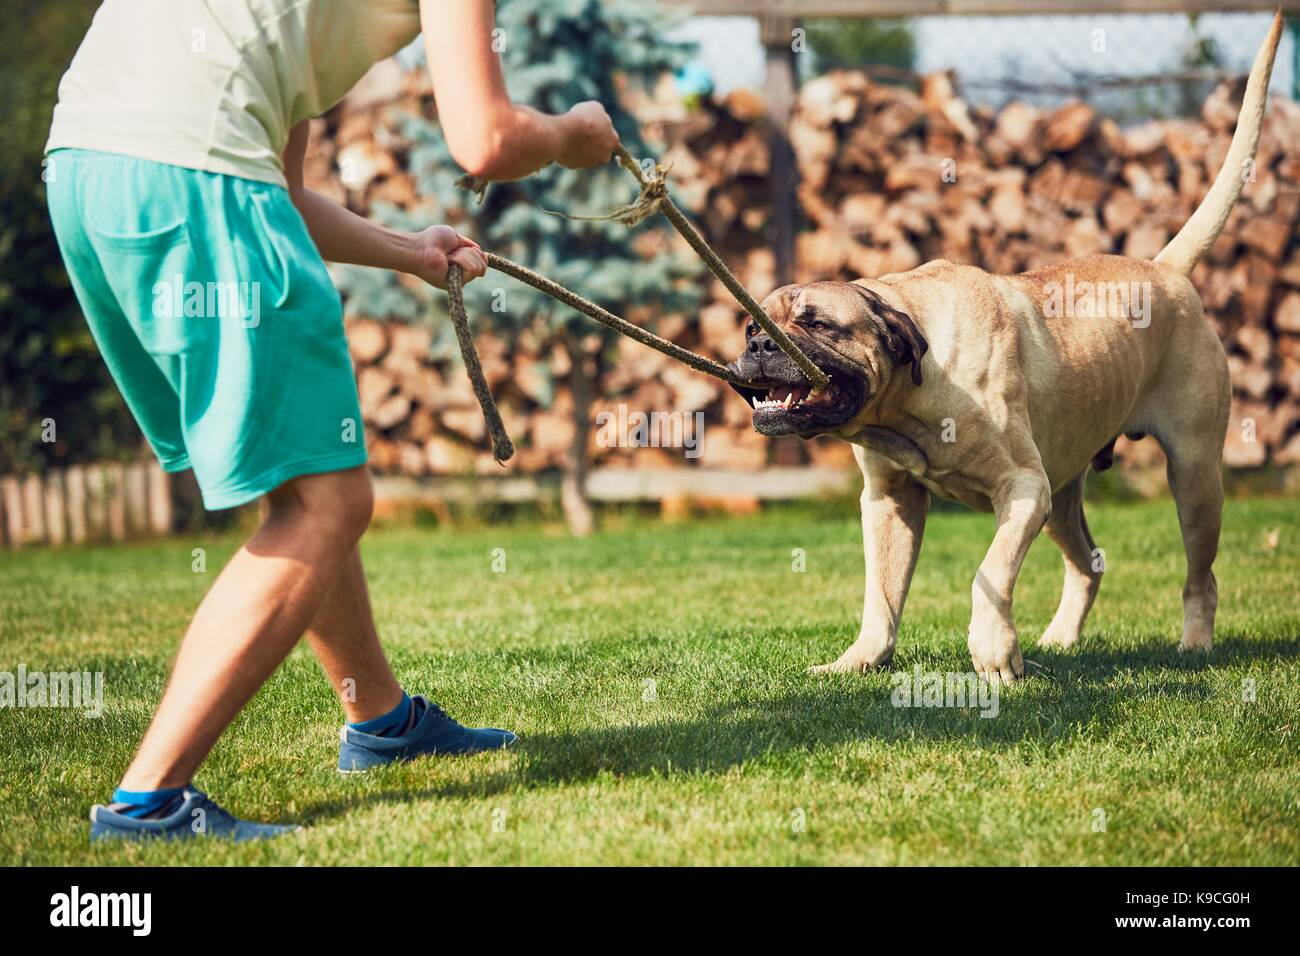 Young man is playing with the dangerous dog in the garden. - Stock Image